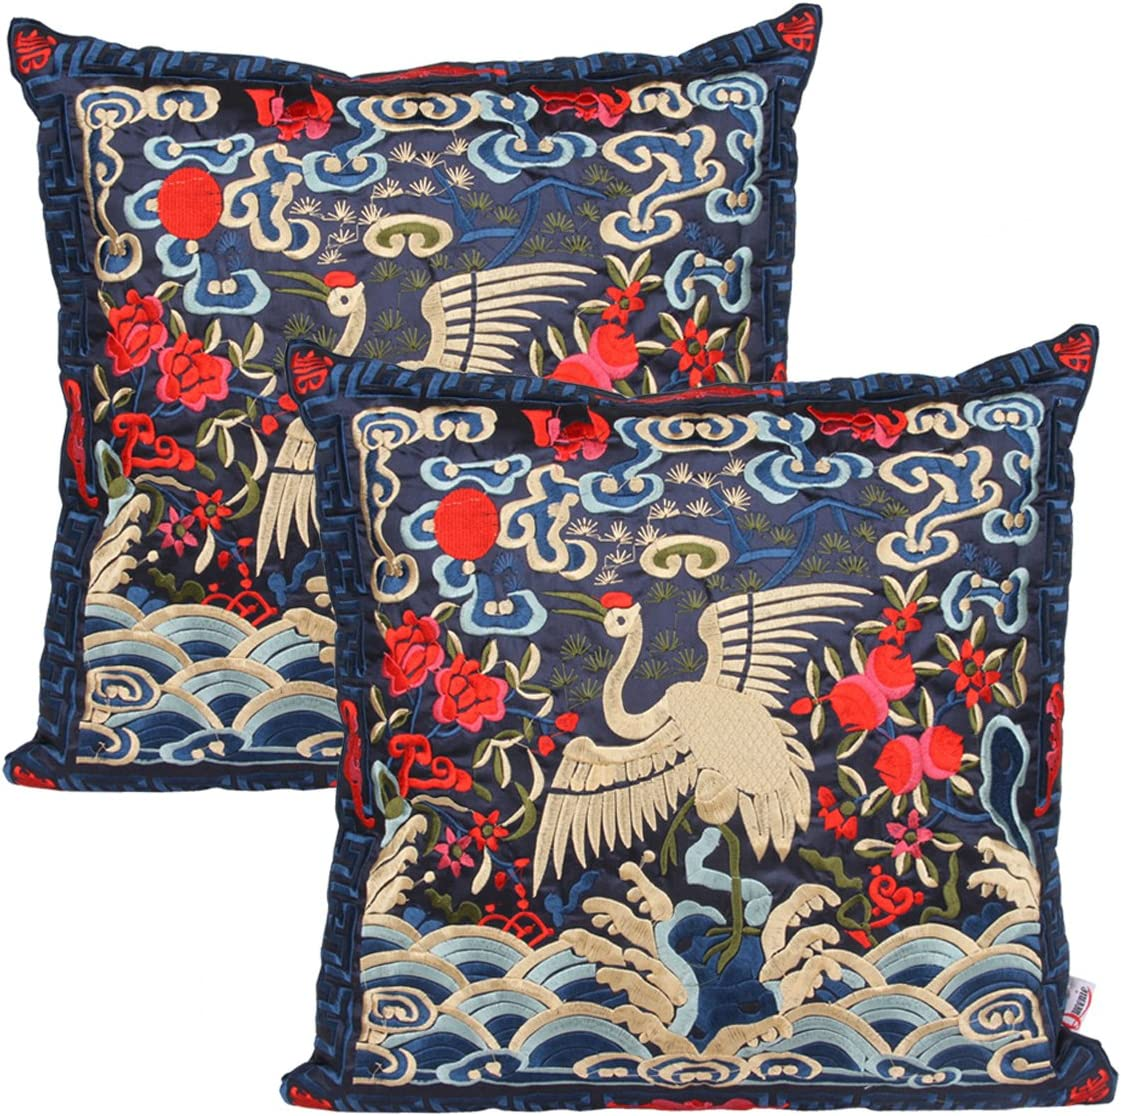 Queenie - 2 Pcs Silky Oriental Chinese Phoenix Embroidered Decorative Throw Pillow Case Cushion Cover 17.25 x 17.25 Inch 44 x 44 cm (CS94 Navy Blue)